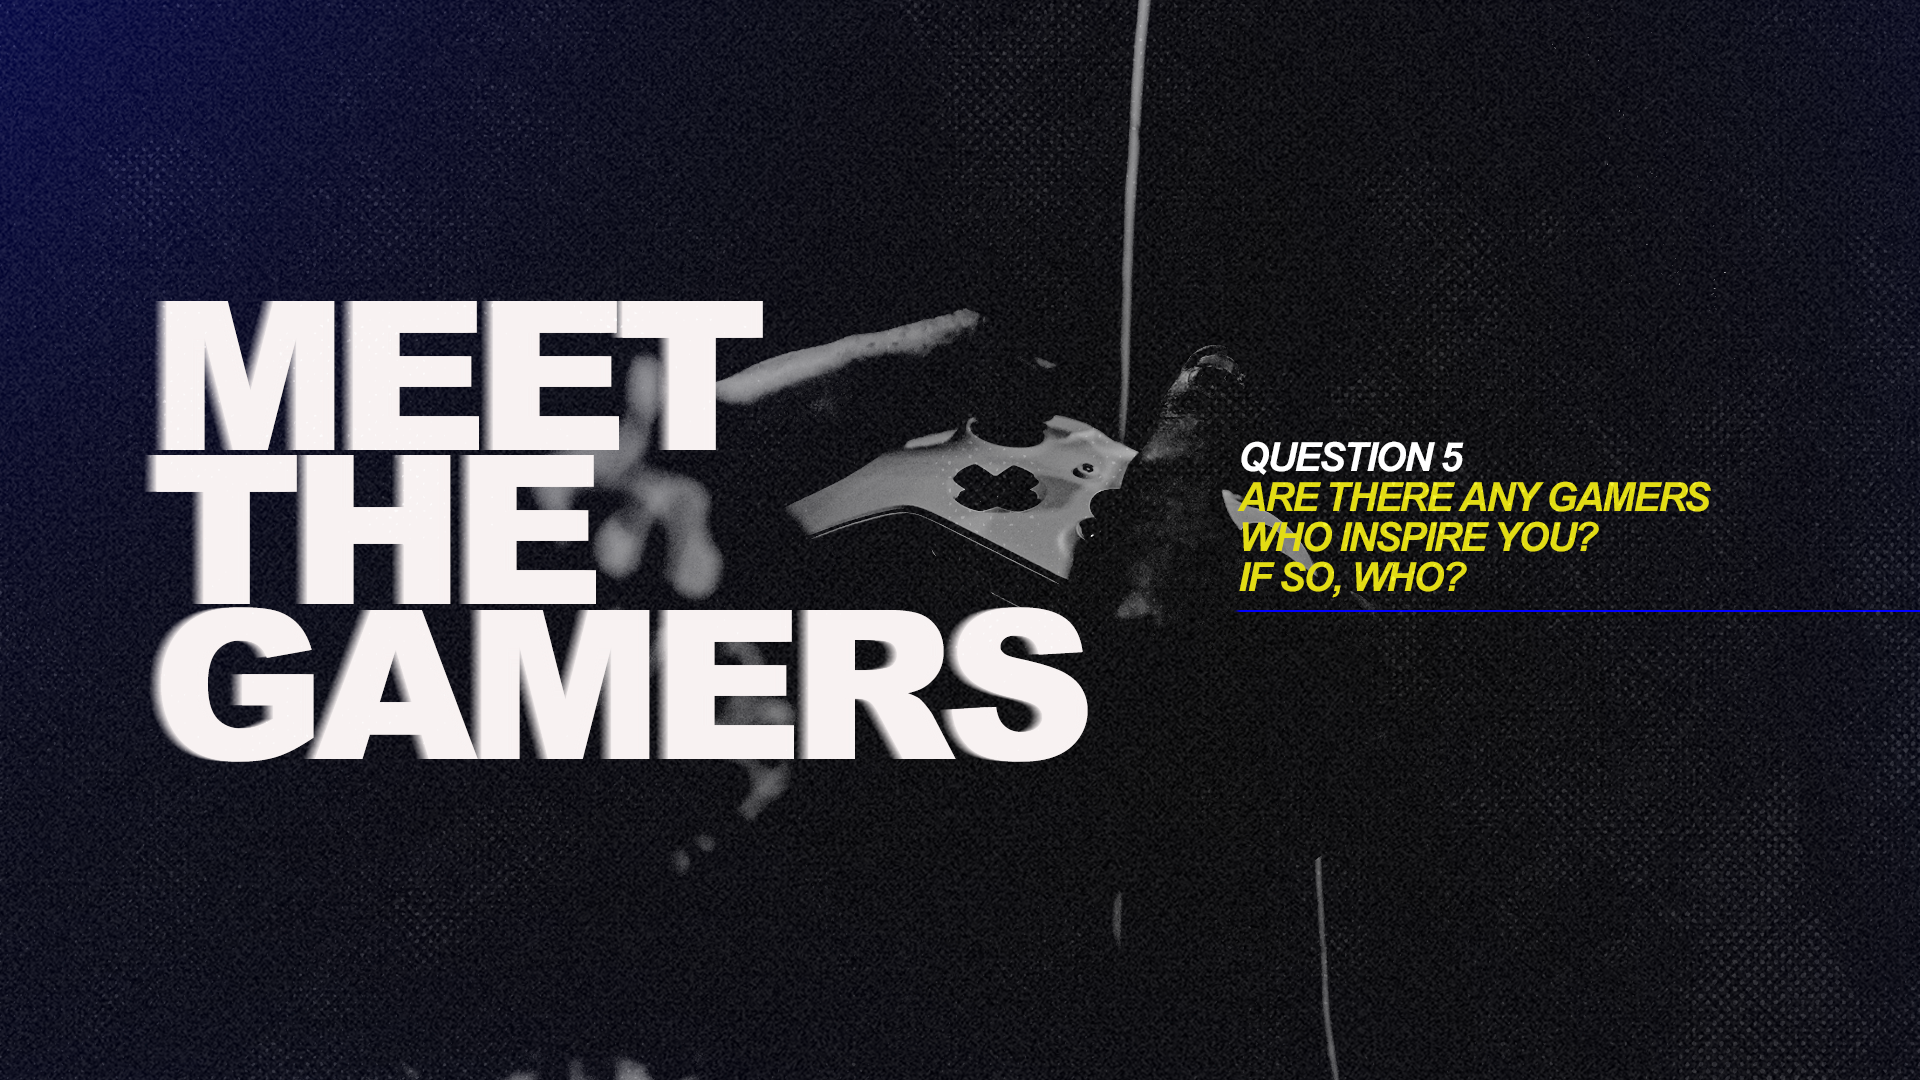 meet the gamers 5